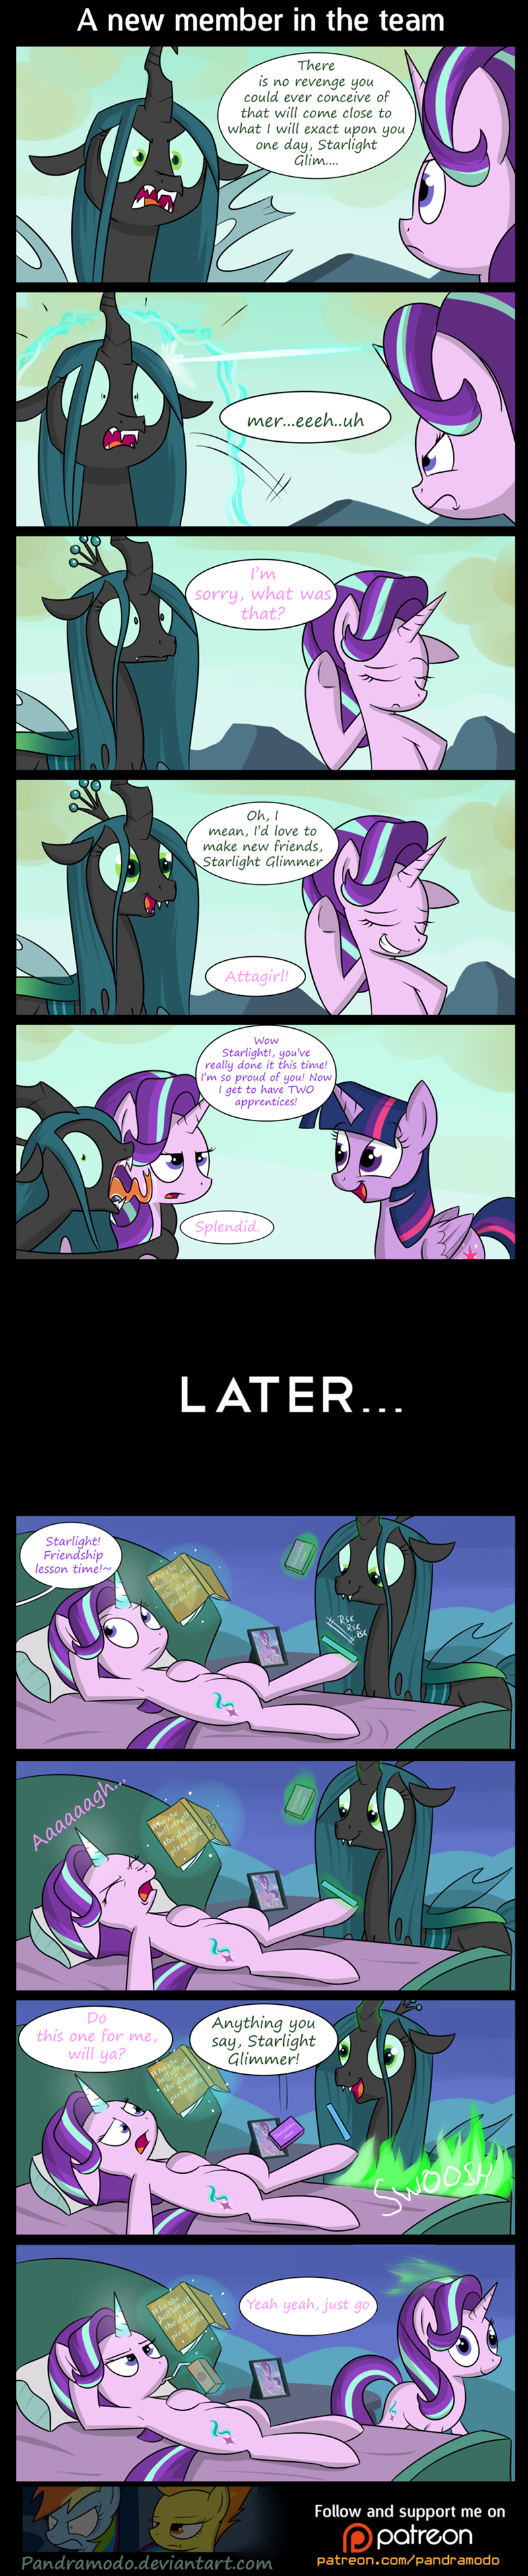 starlight glimmer twilight sparkle every little thing she does chrysalis comic to where and back again changelings - 8986222592